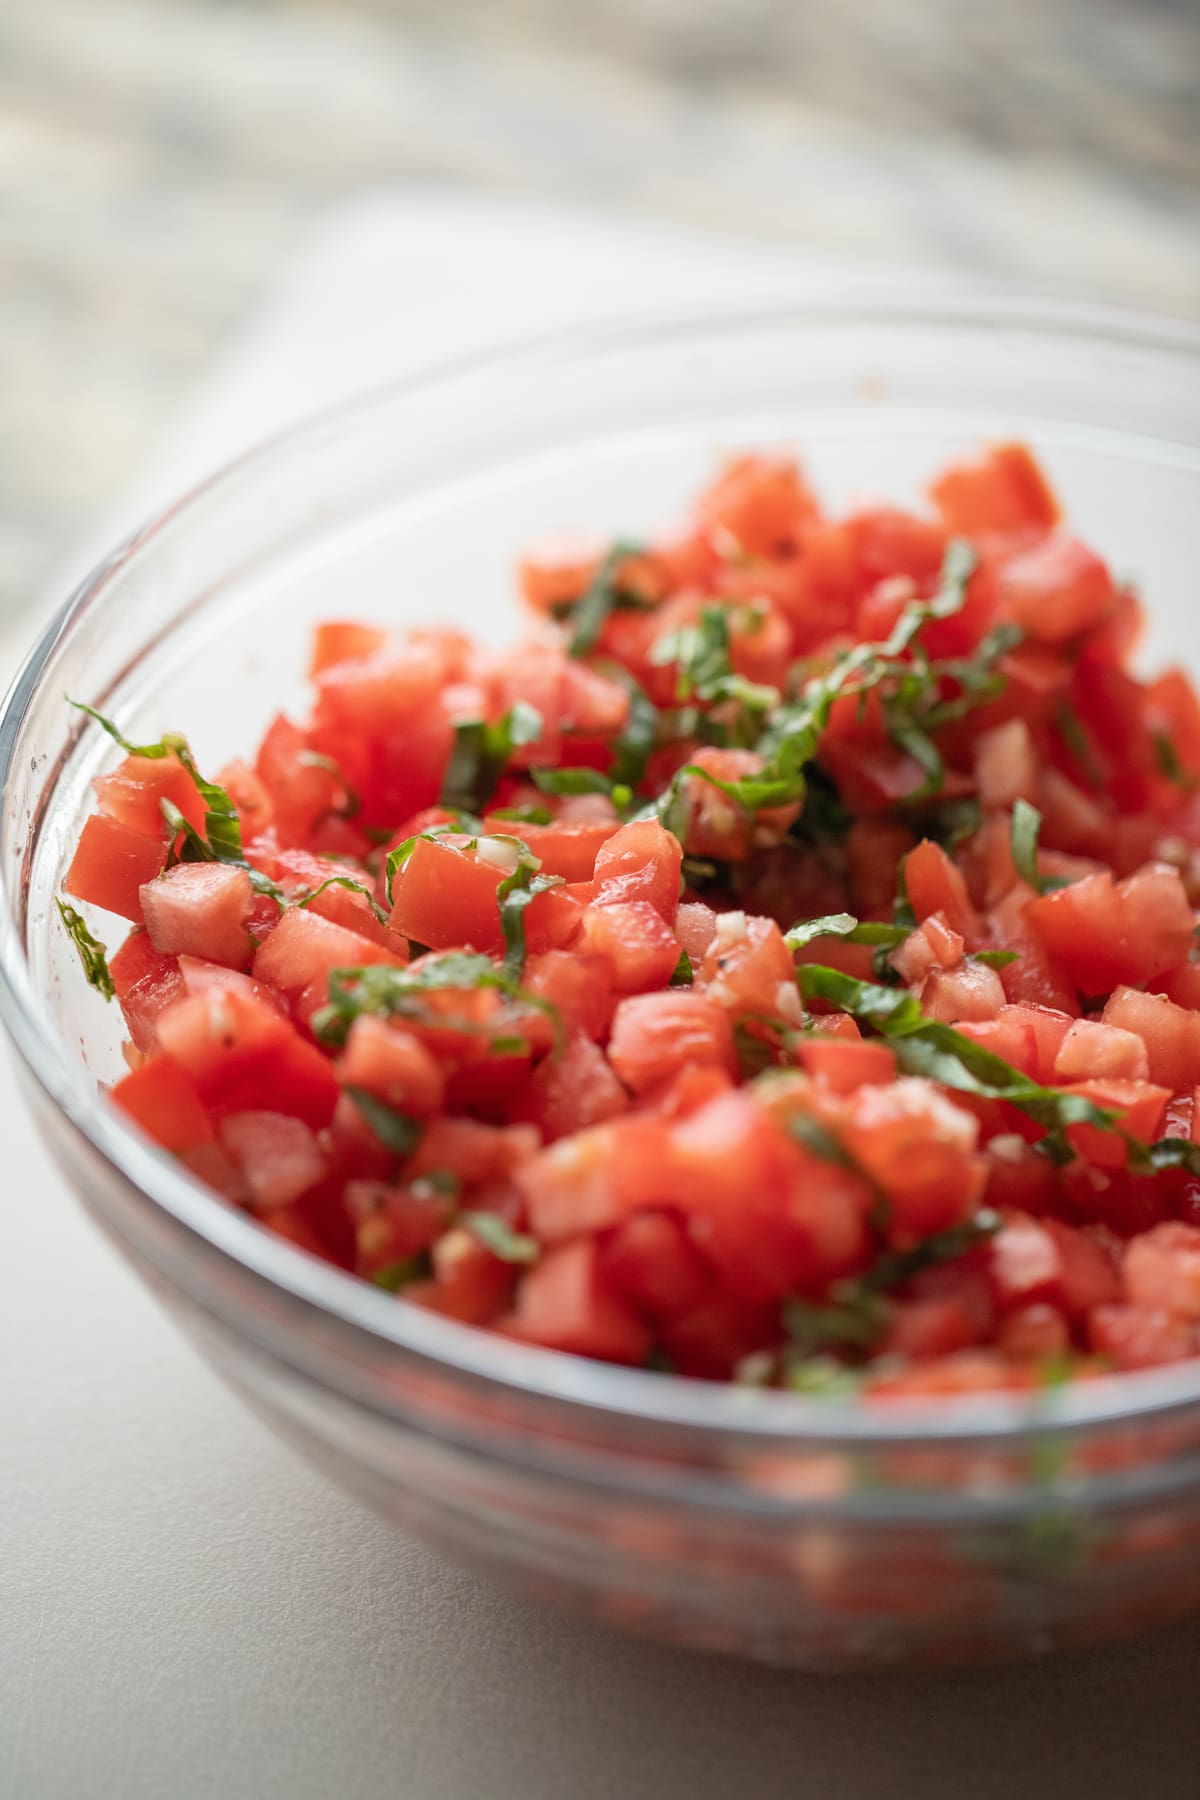 diced tomatoes, garlic and basil in glass bowl